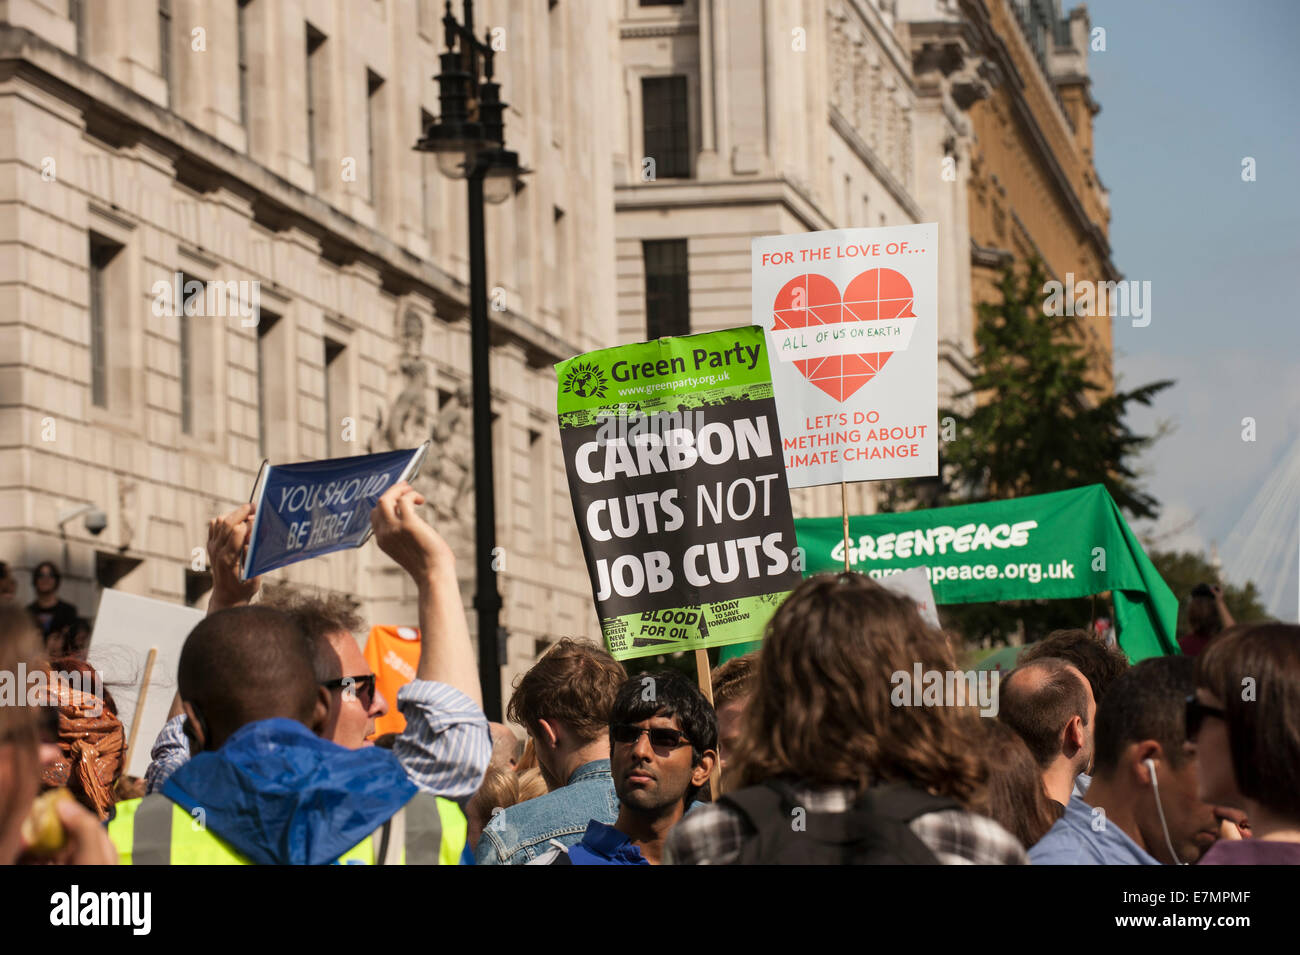 London, UK. 21st Sep, 2014. Marchers hold placards aloft at the Climate Change demonstration, London, 21st September - Stock Image